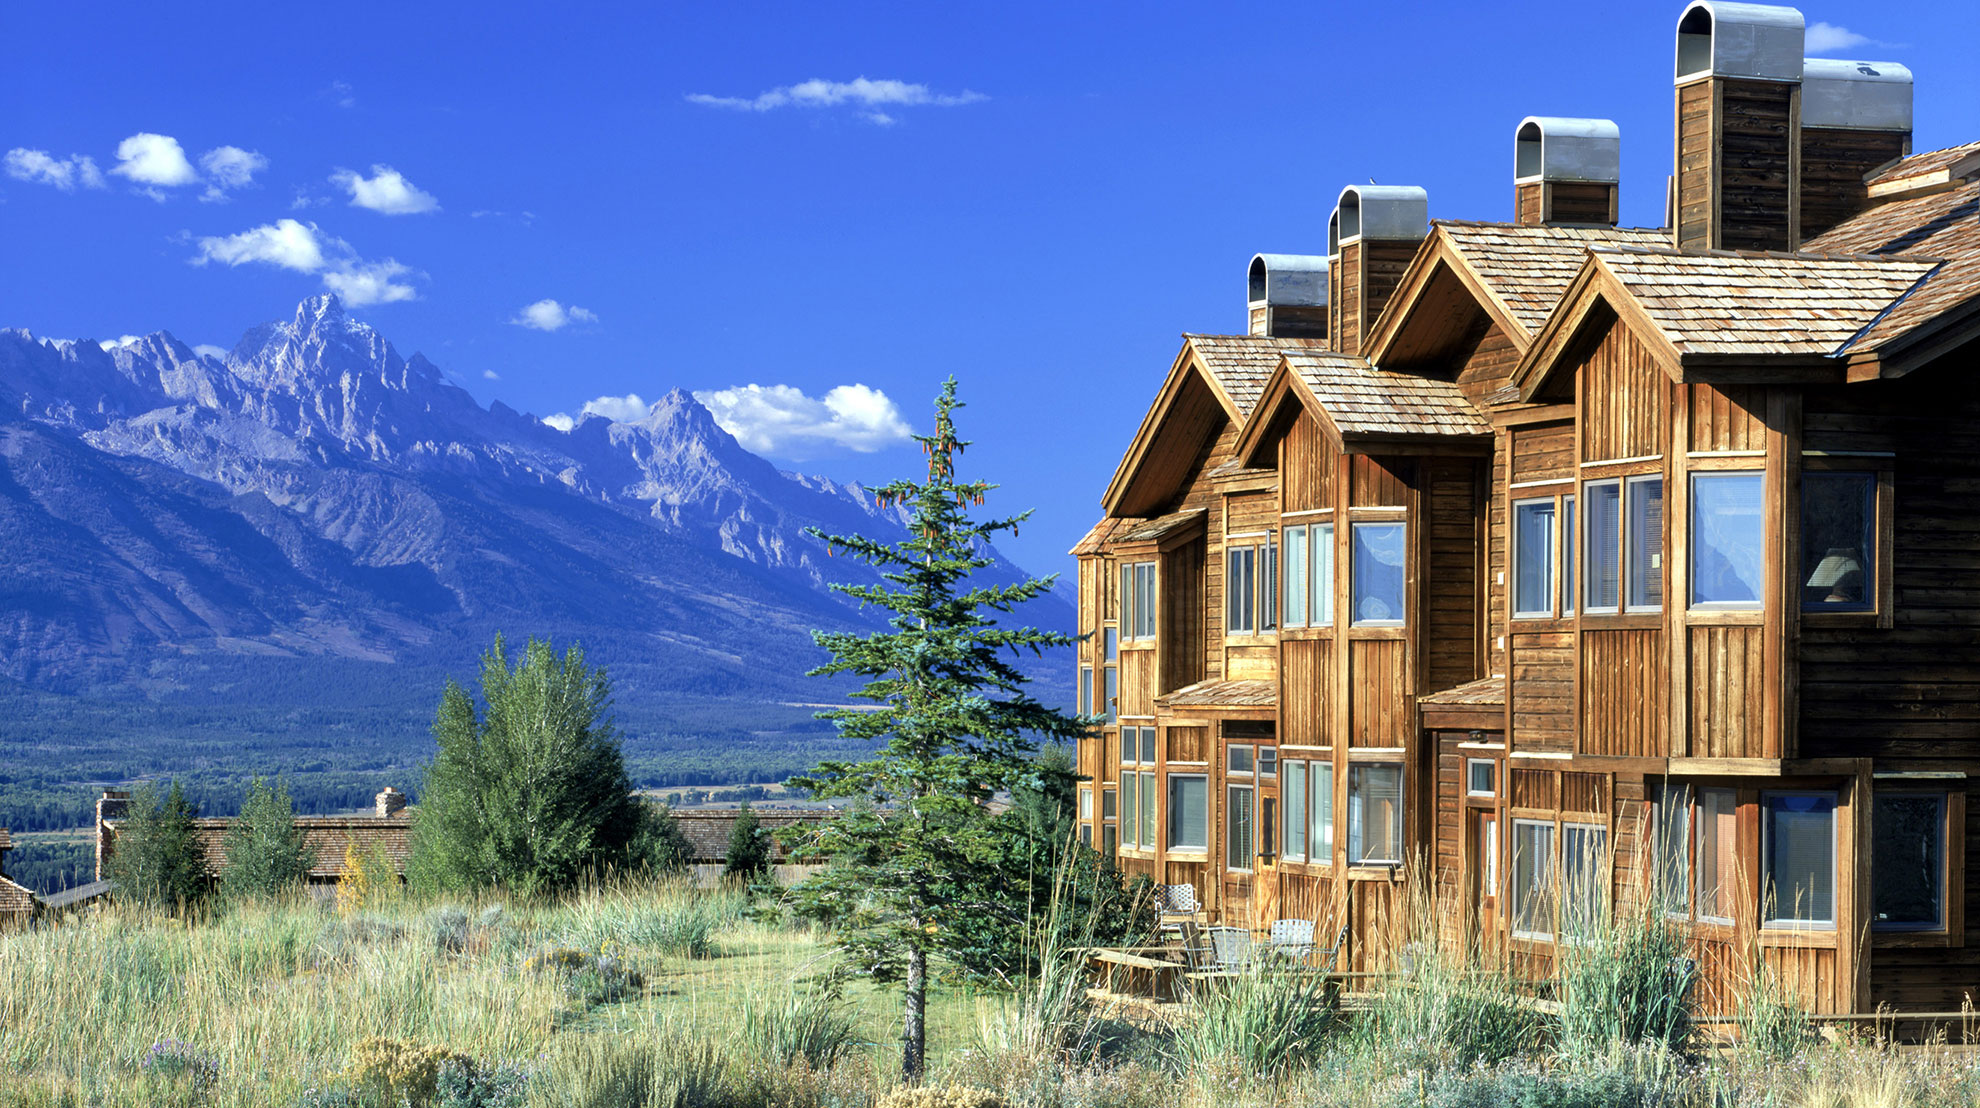 Jackson Hole Lodging Hotel Rental Homes Condos